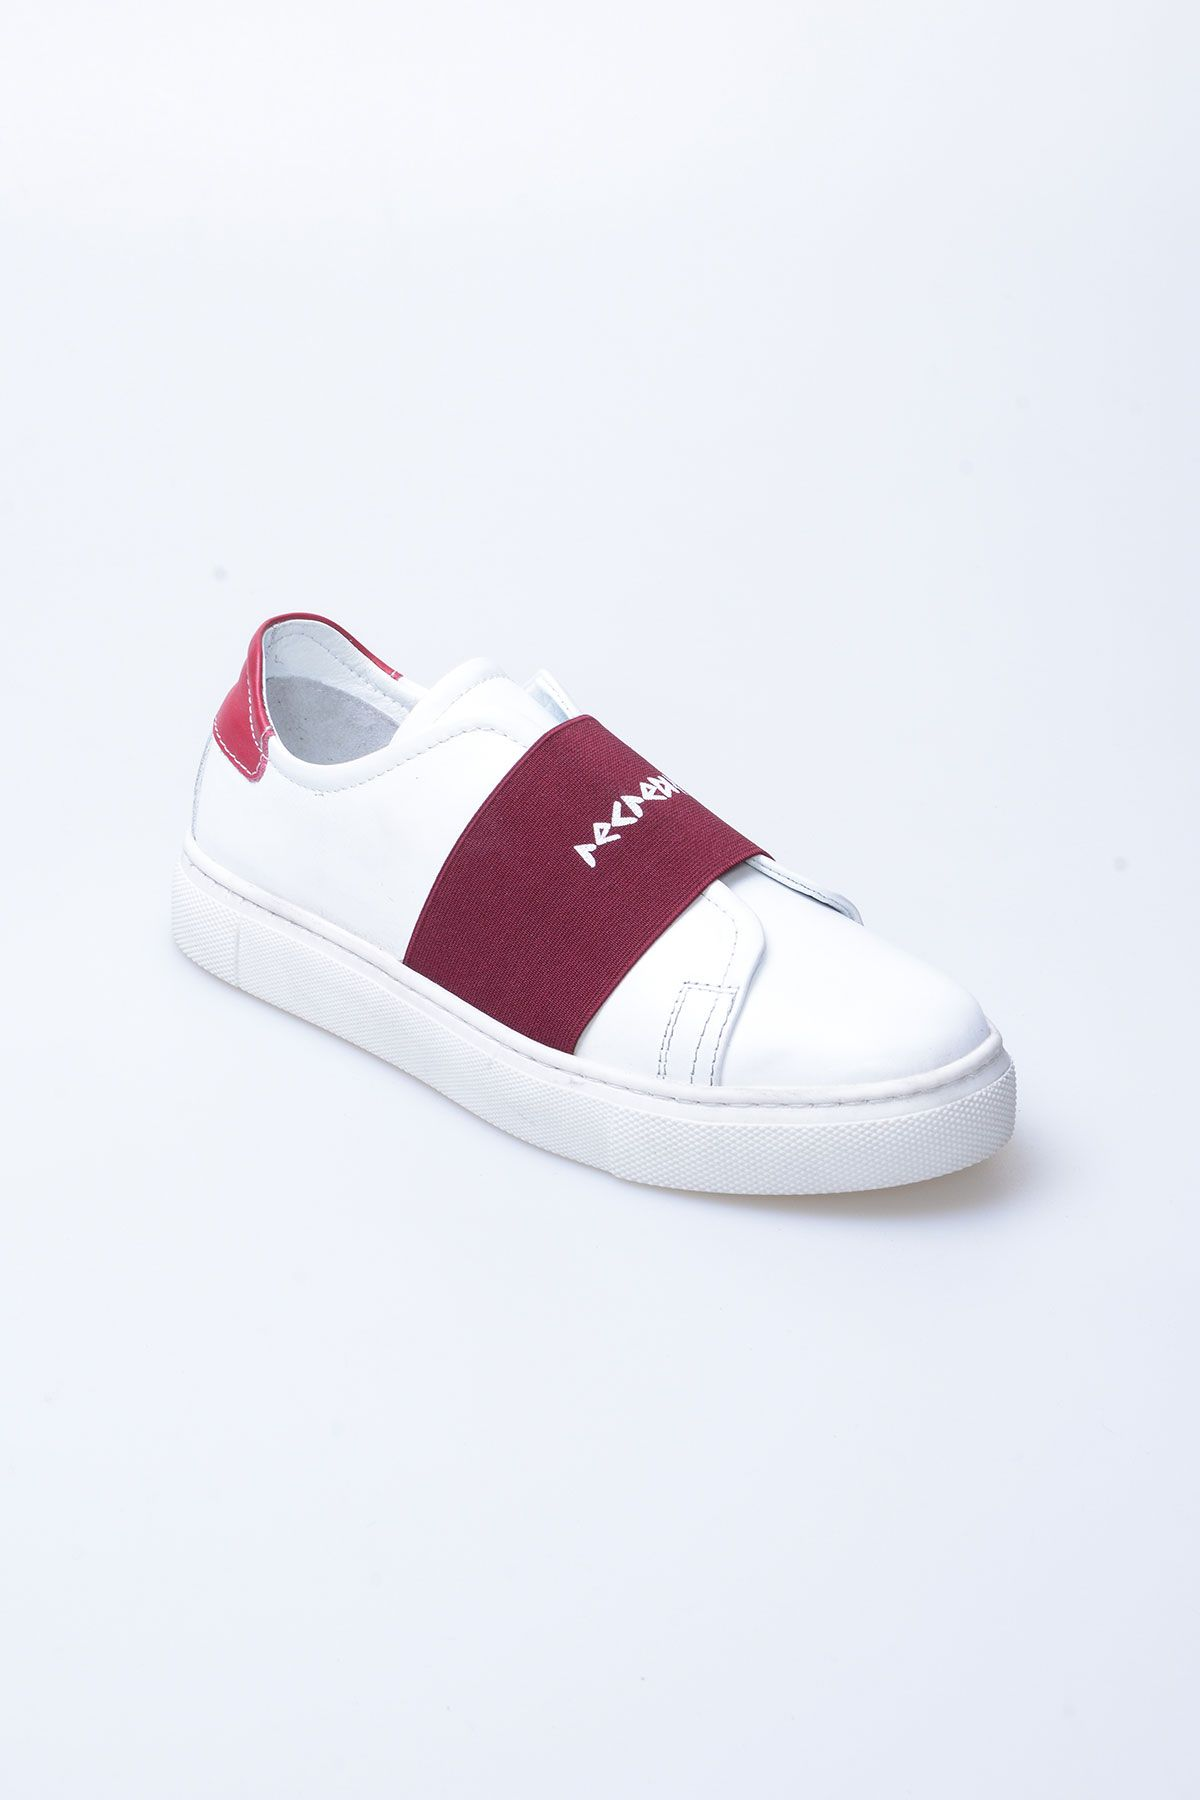 Pegia Recreation Hakiki Deri Bayan Sneaker 19REC101 Claret red